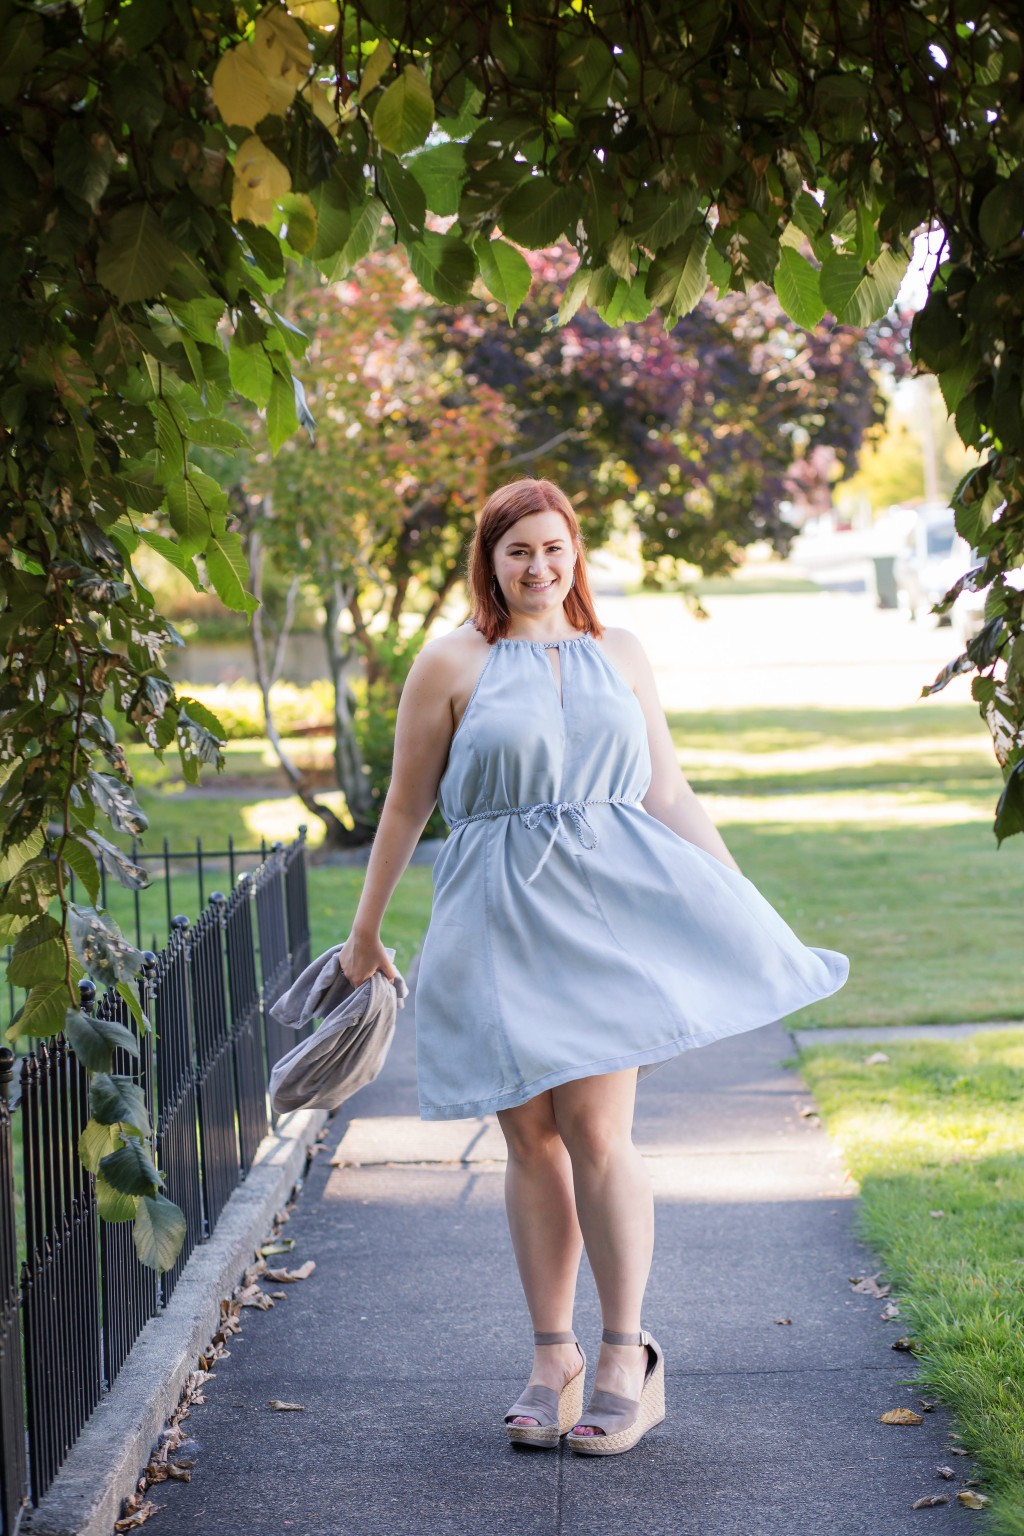 7 - twirling in a chambray dress